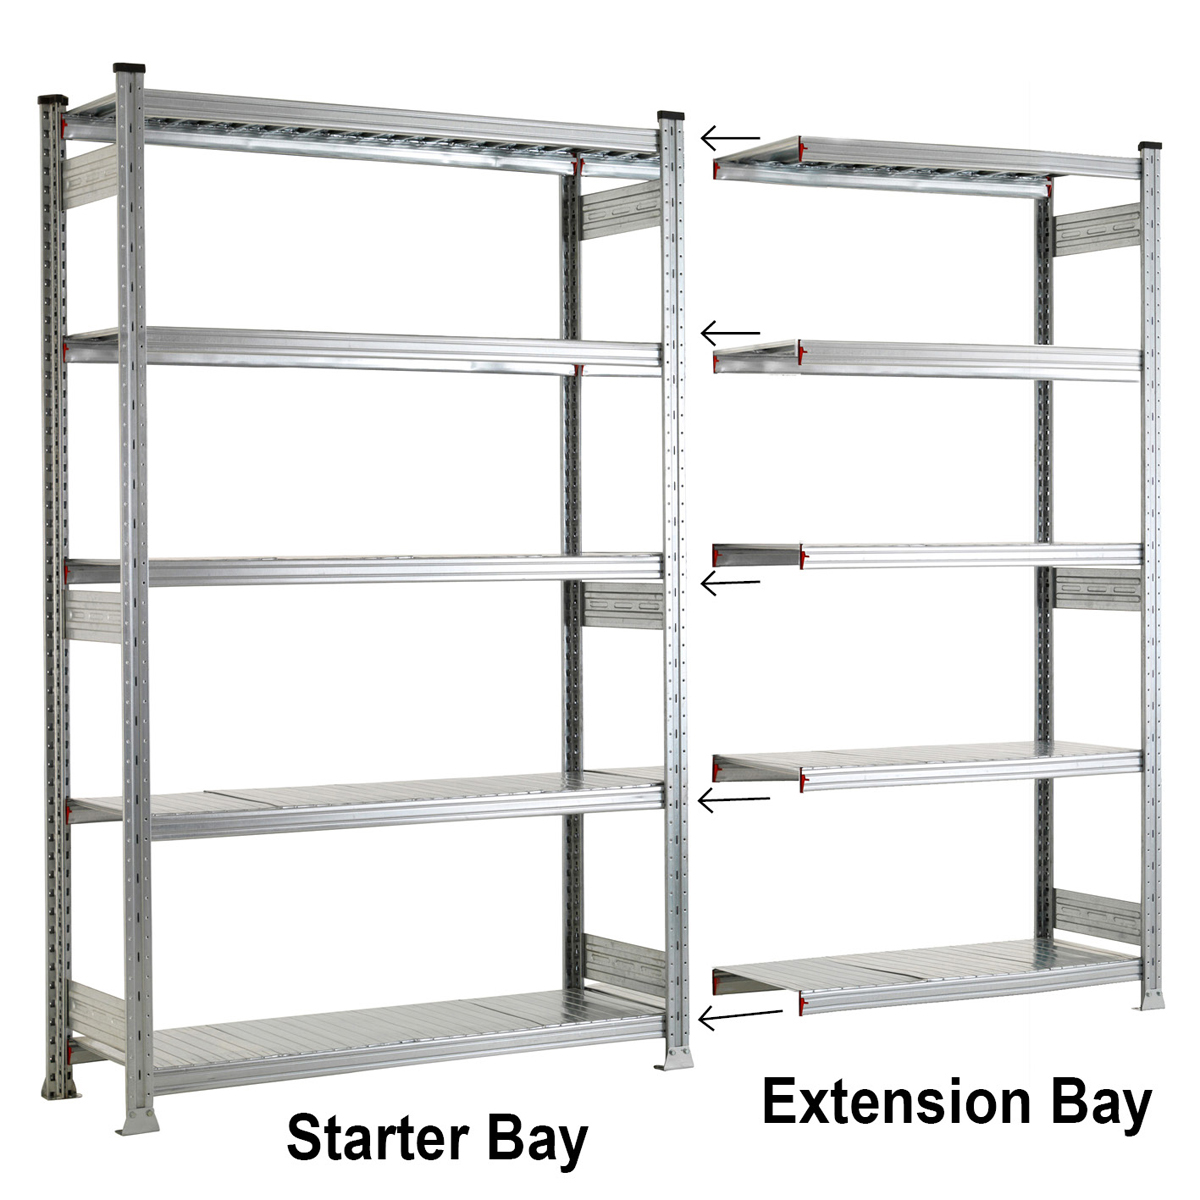 galvanised 5 level shelving system garage shelves garage accessories rh garagepride co uk steel storage racks for garage steel shelving for garage storage